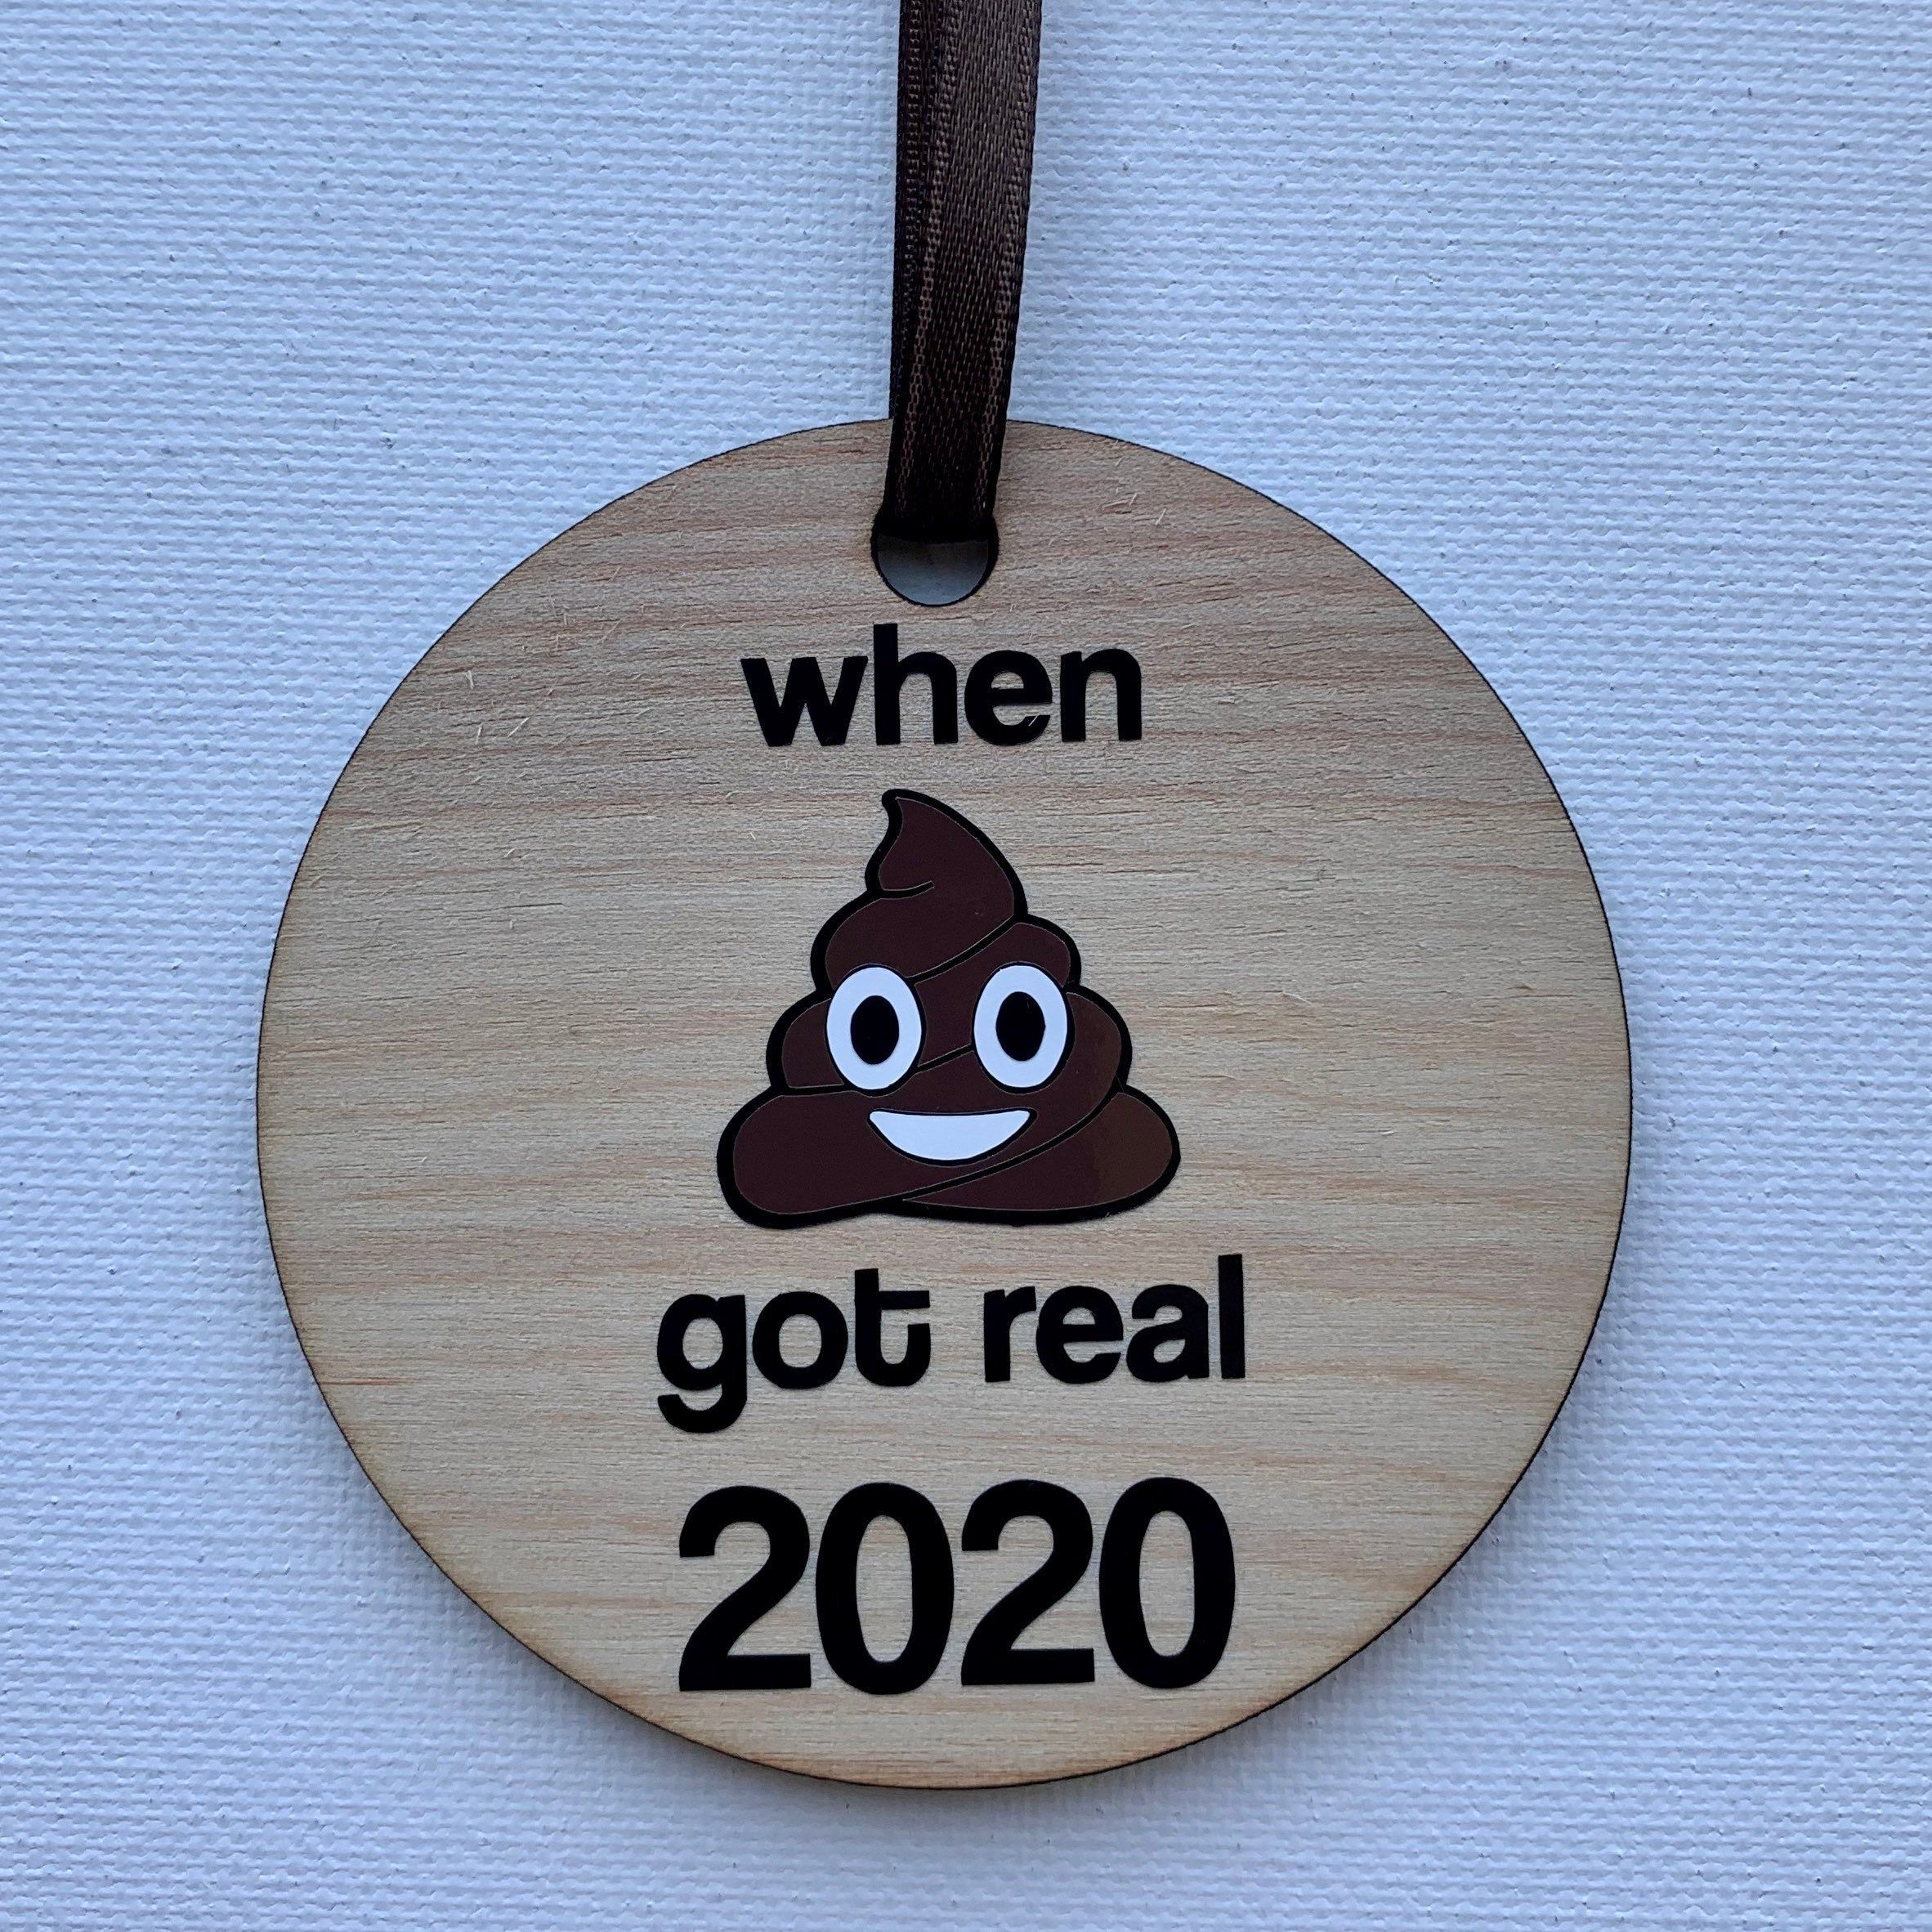 Simple Funny Christmas Decorations For 2020 Pin on Christmas Decor